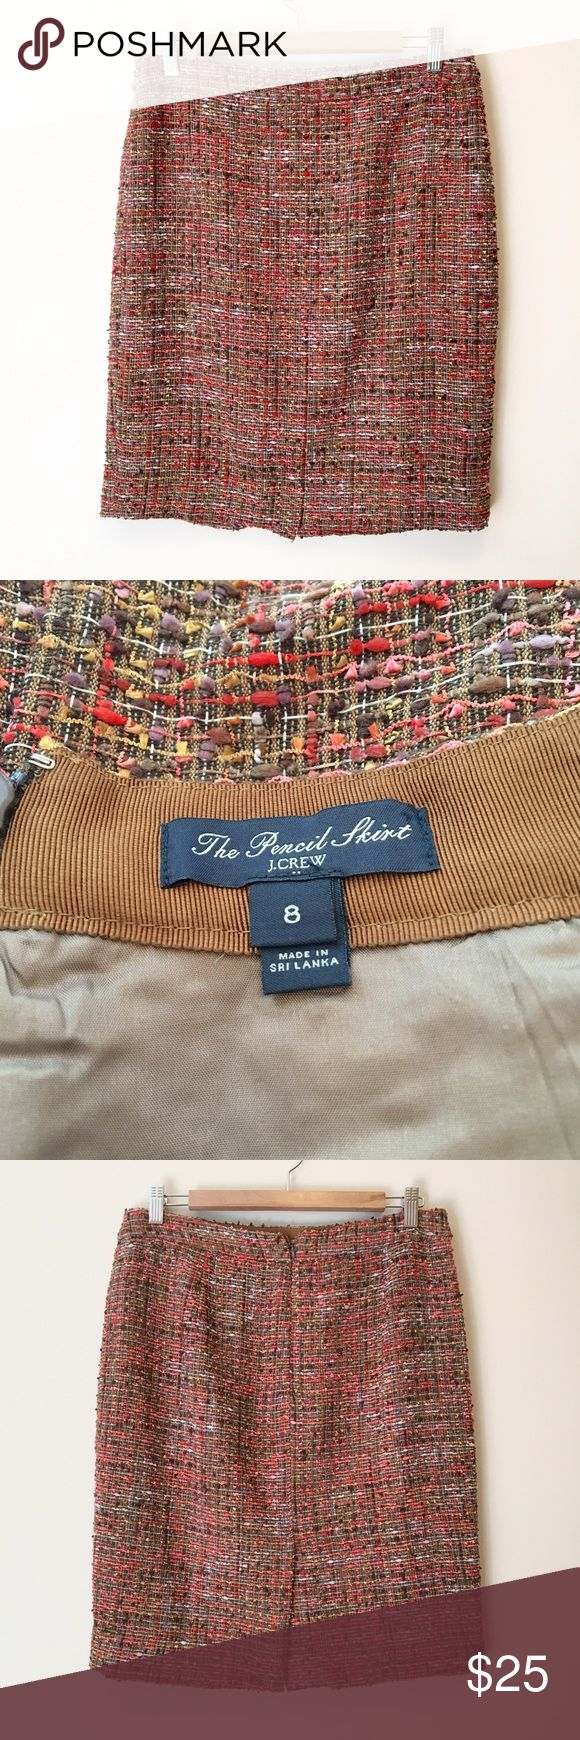 J. Crew Tweed Pencil Skirt Tweed pencil skirt by J. Crew.  Brown base with pink, purple, coral and yellow.  Very pretty and in great condition!  Size 8. J. Crew Skirts Pencil